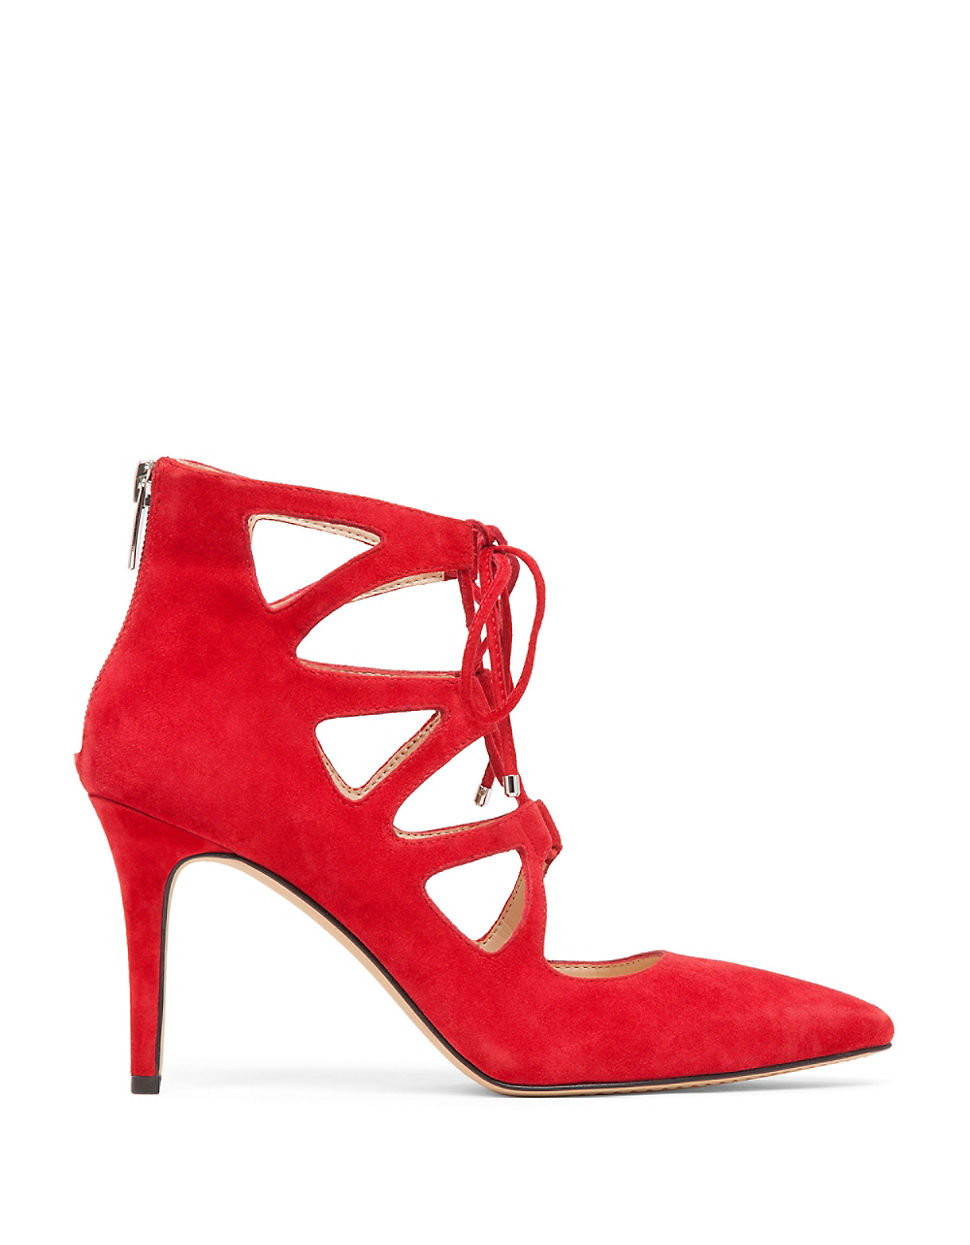 Vince Camuto Bodell Lace Up Suede Sandals In Red Lyst